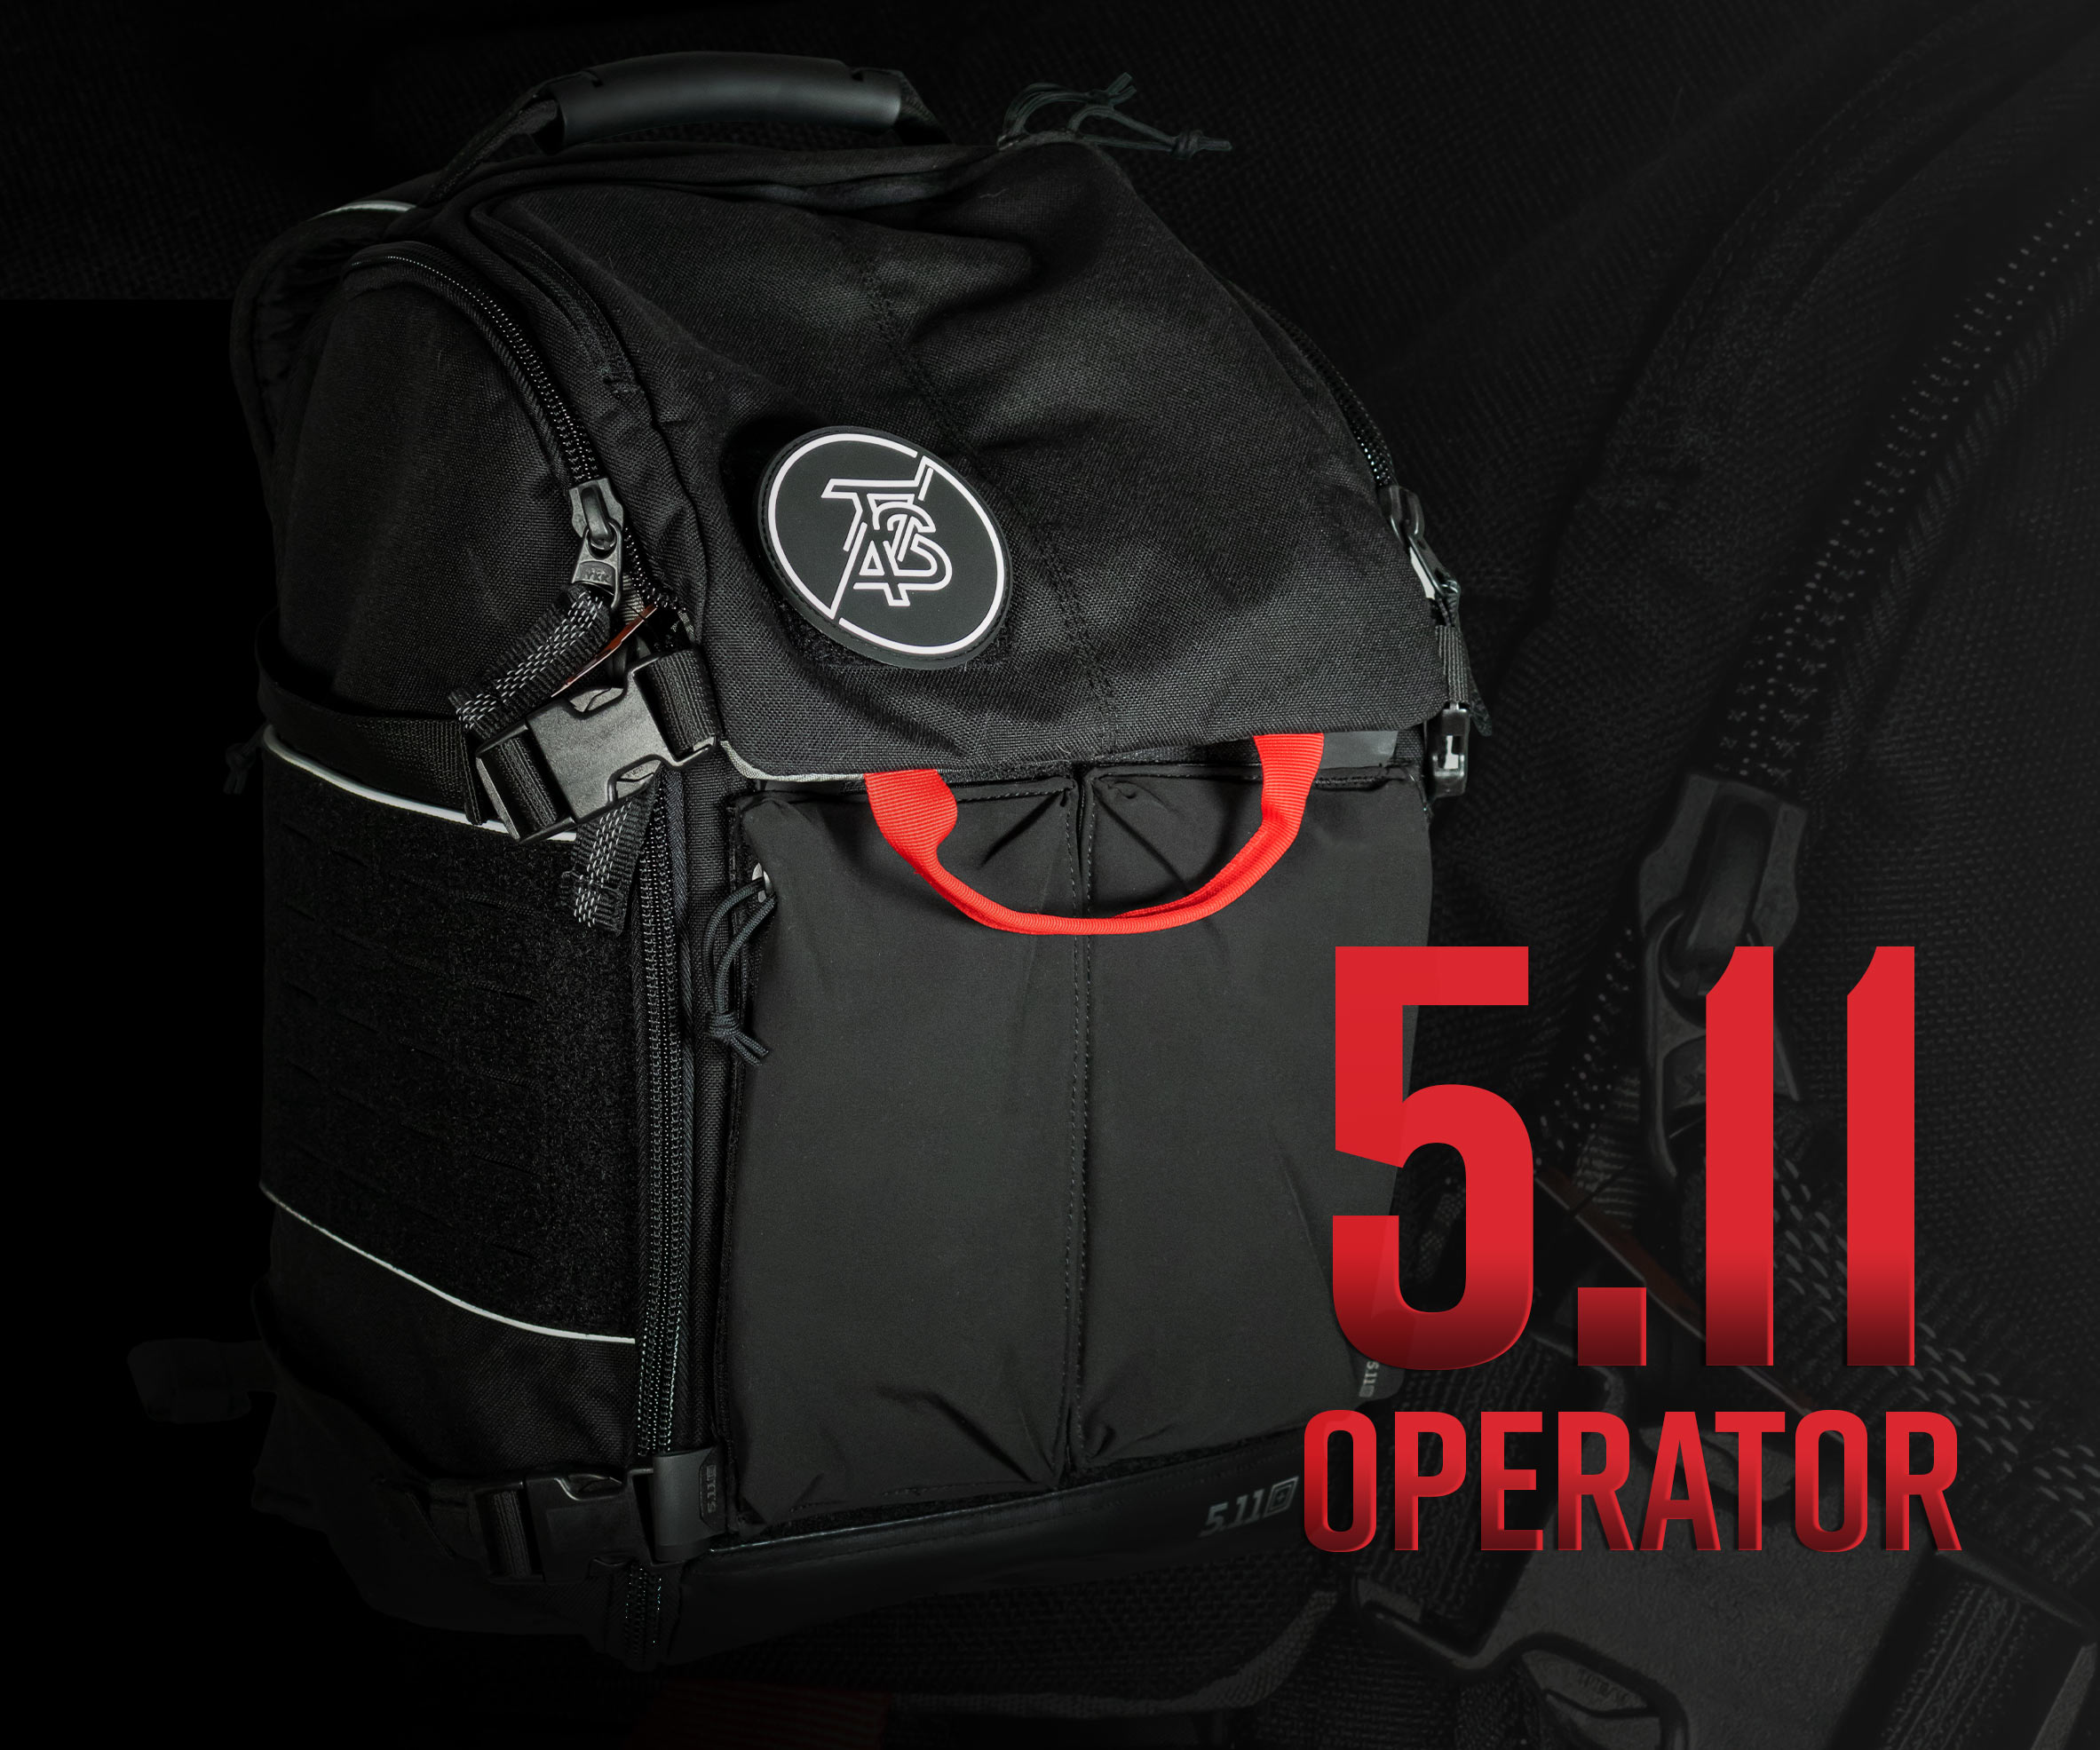 5.11 Tactical Operator